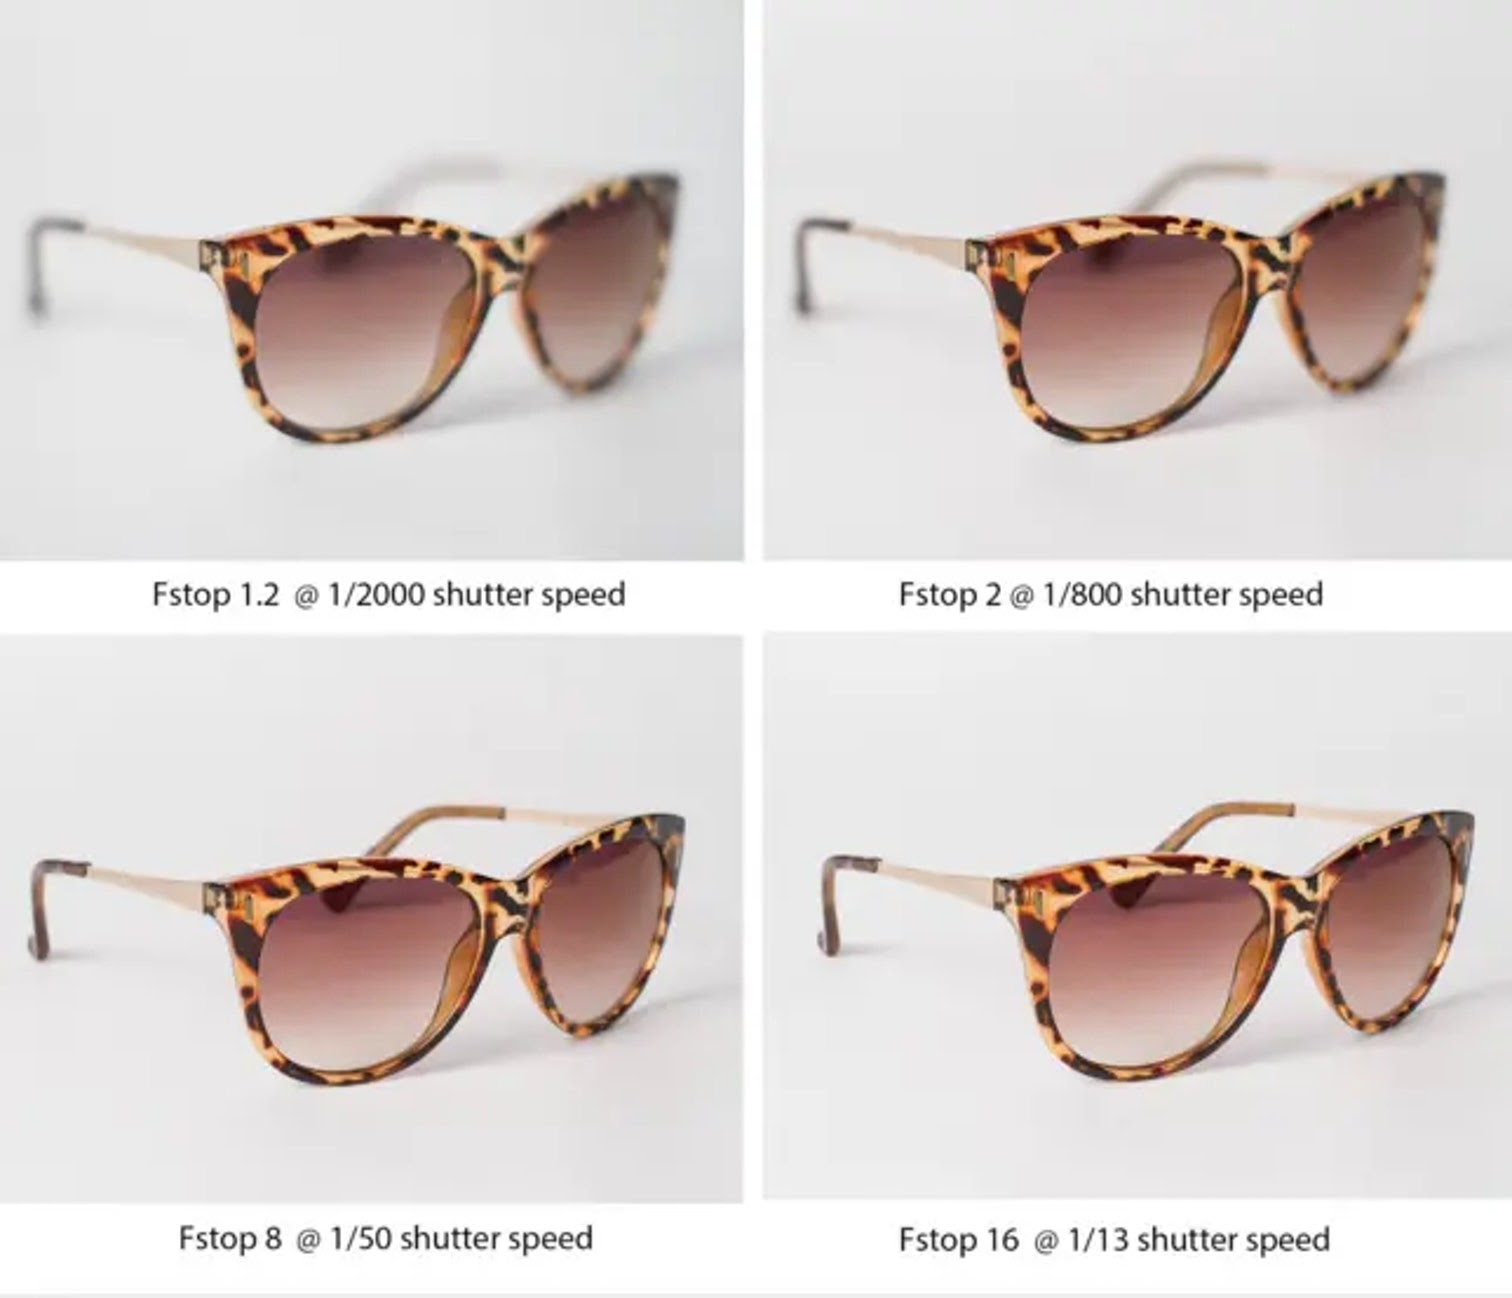 Multiple photos of sunglasses shot with different focus settings